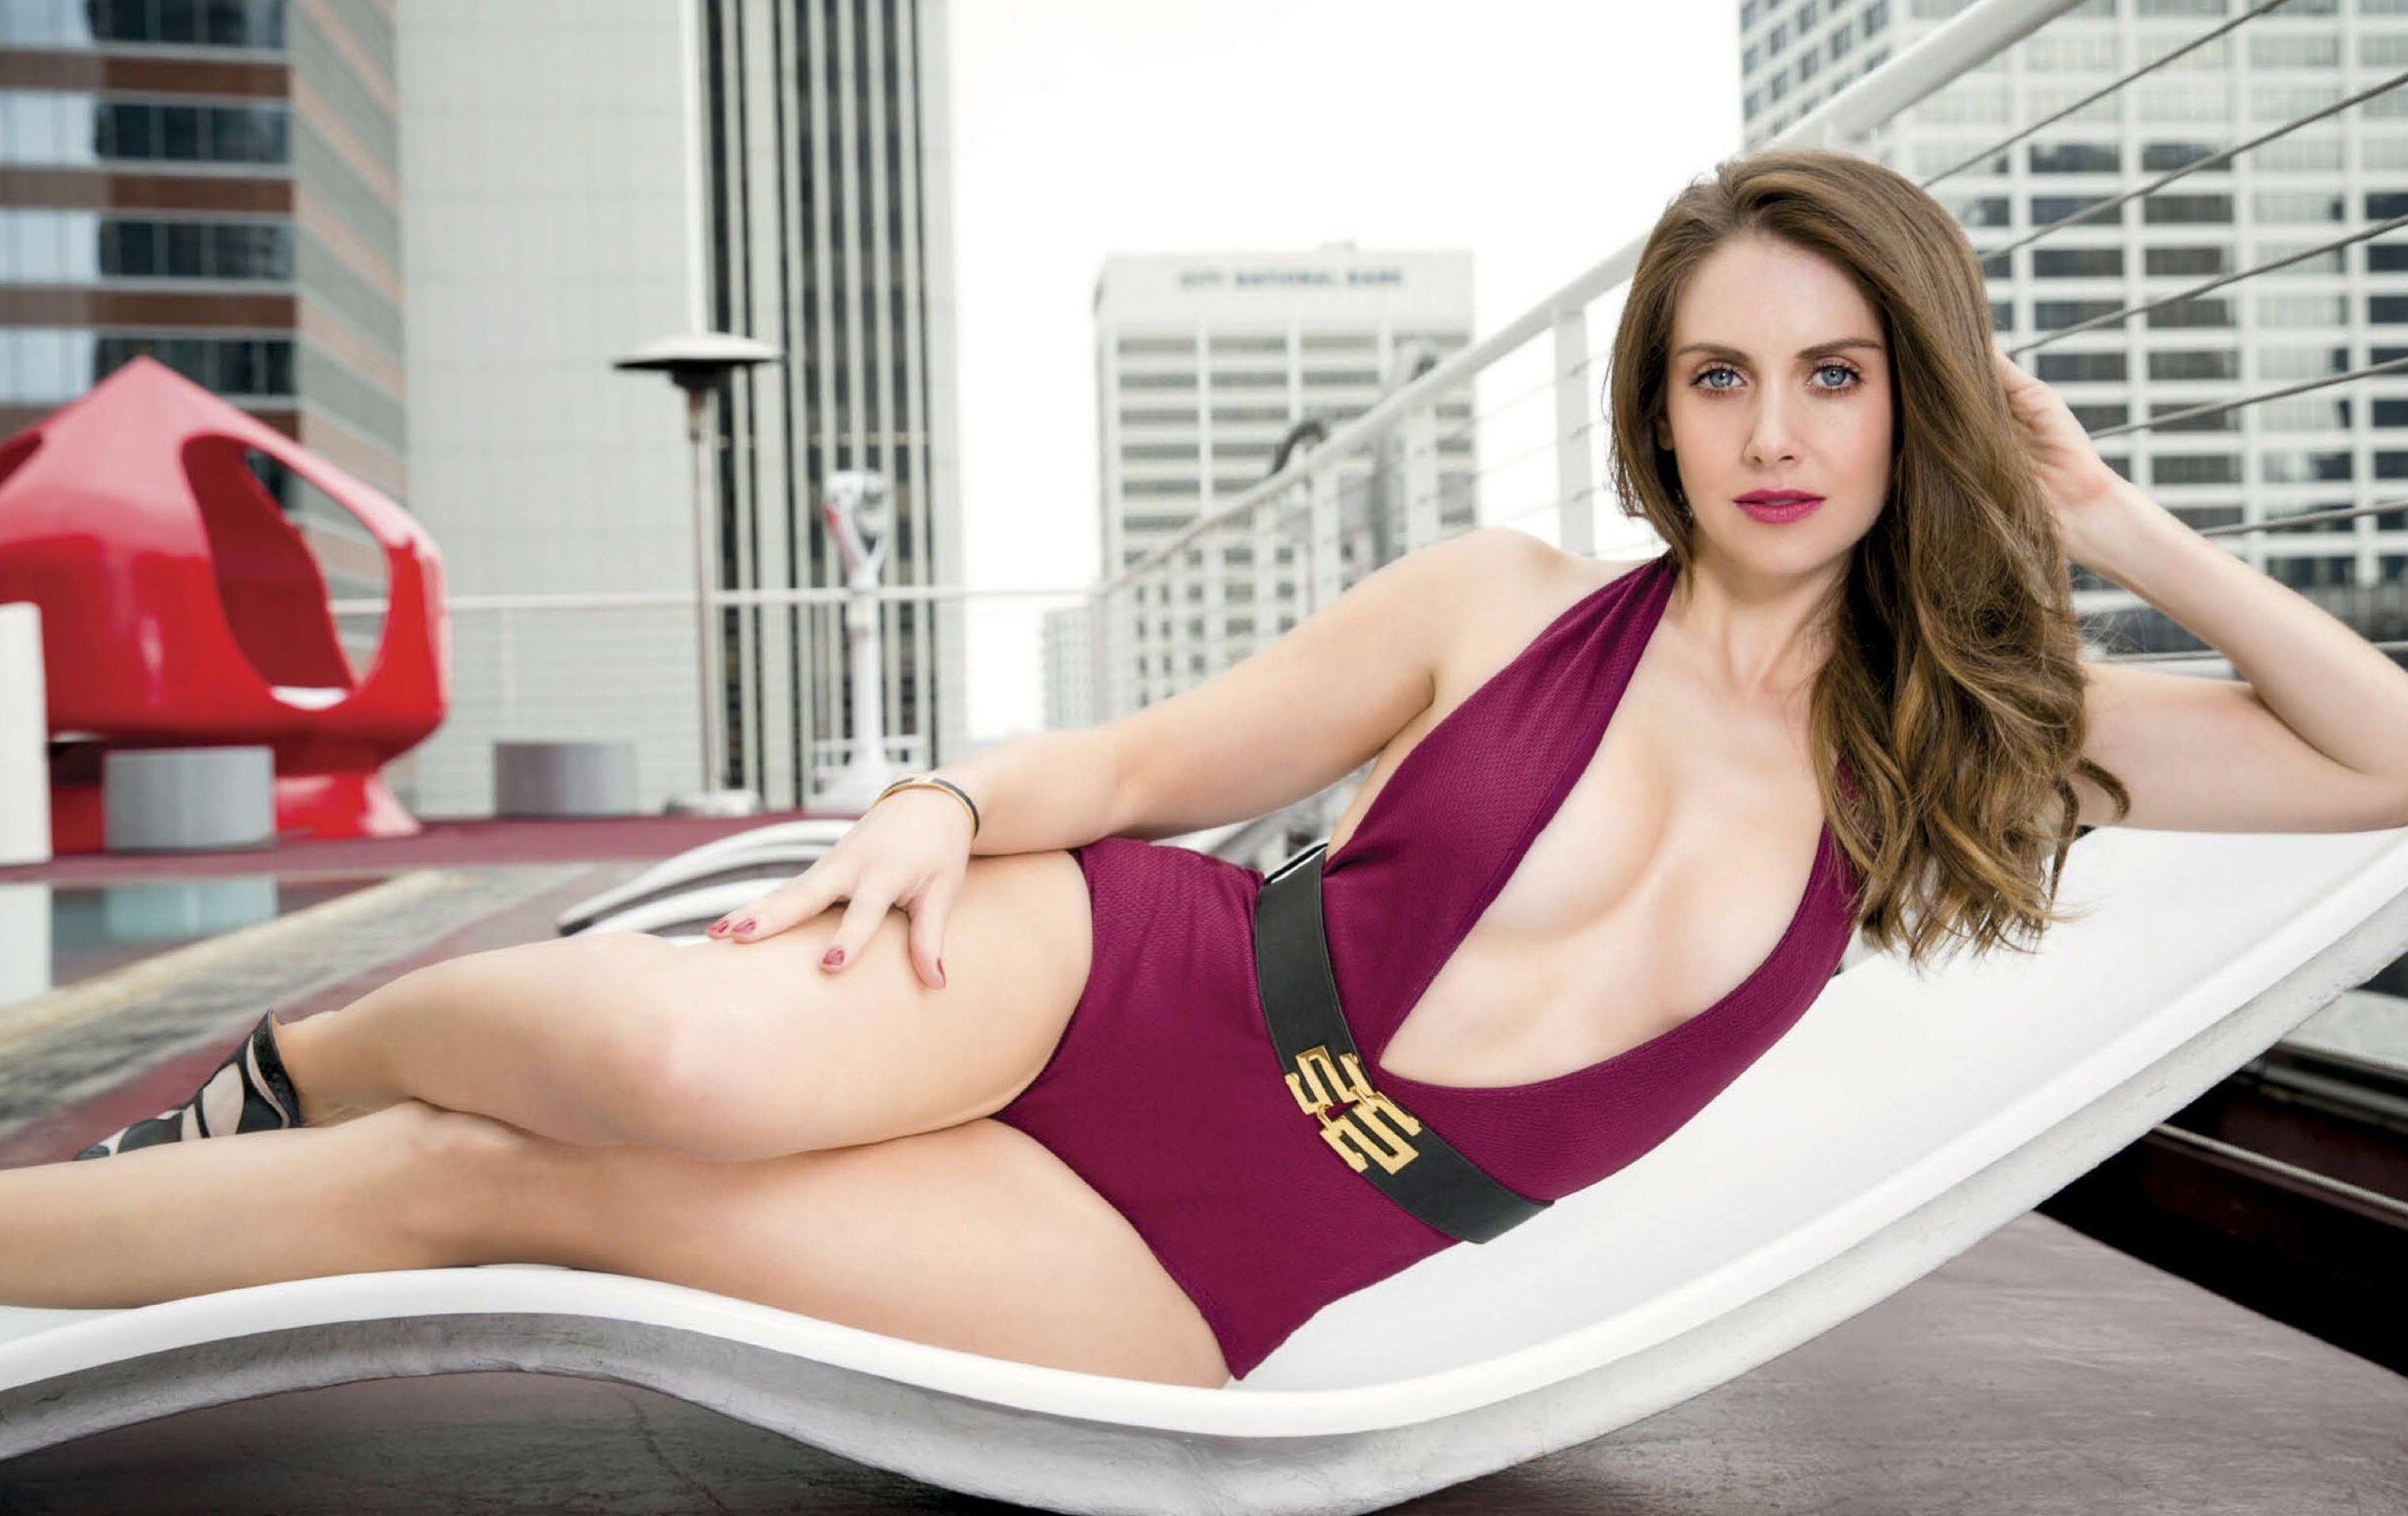 alison brie hot & sexy bikini pictures, images, videos